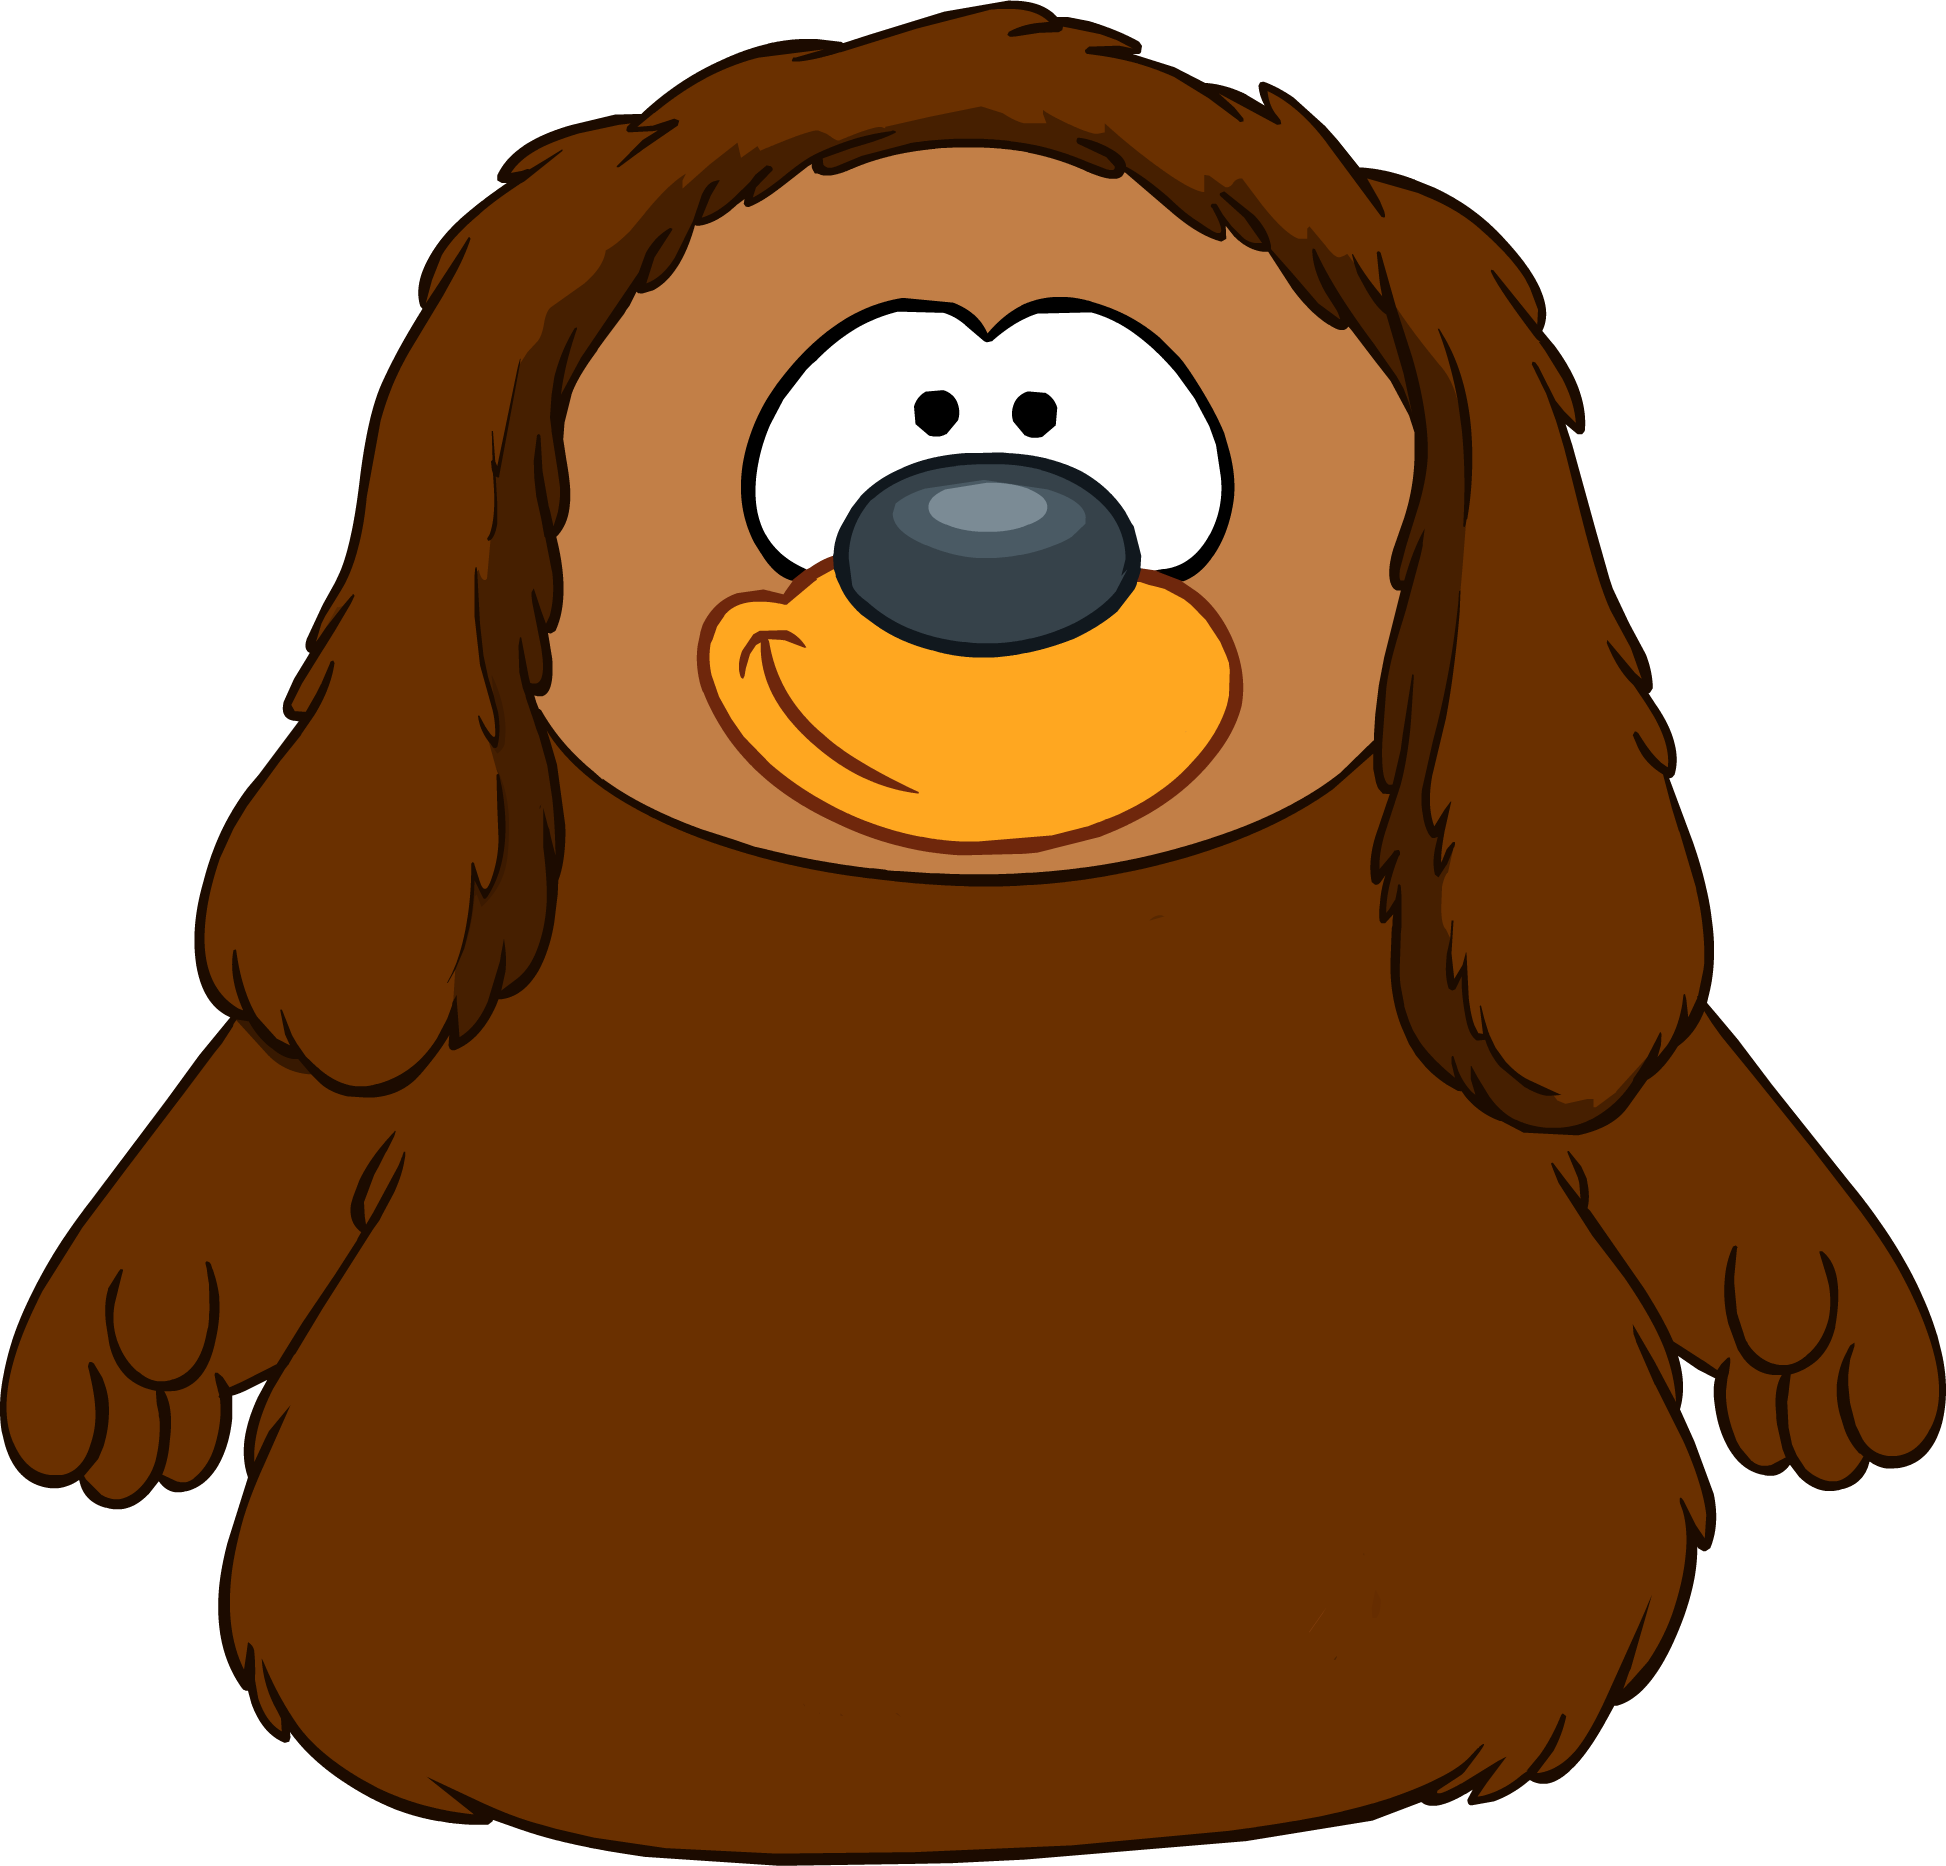 Image rowlf icon png. Costume clipart animal costume